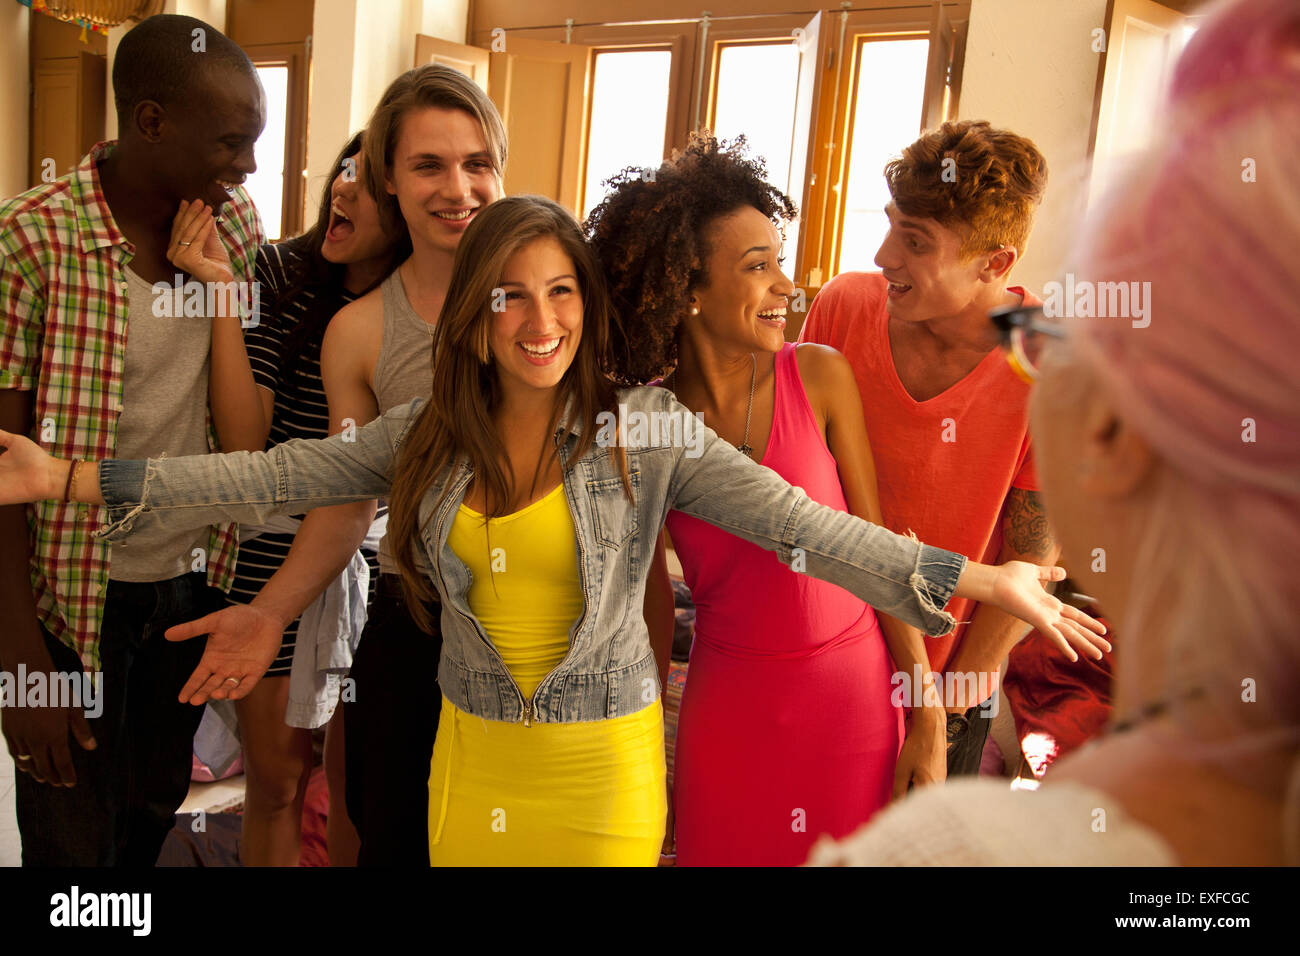 Students welcoming and greeting lecturer - Stock Image